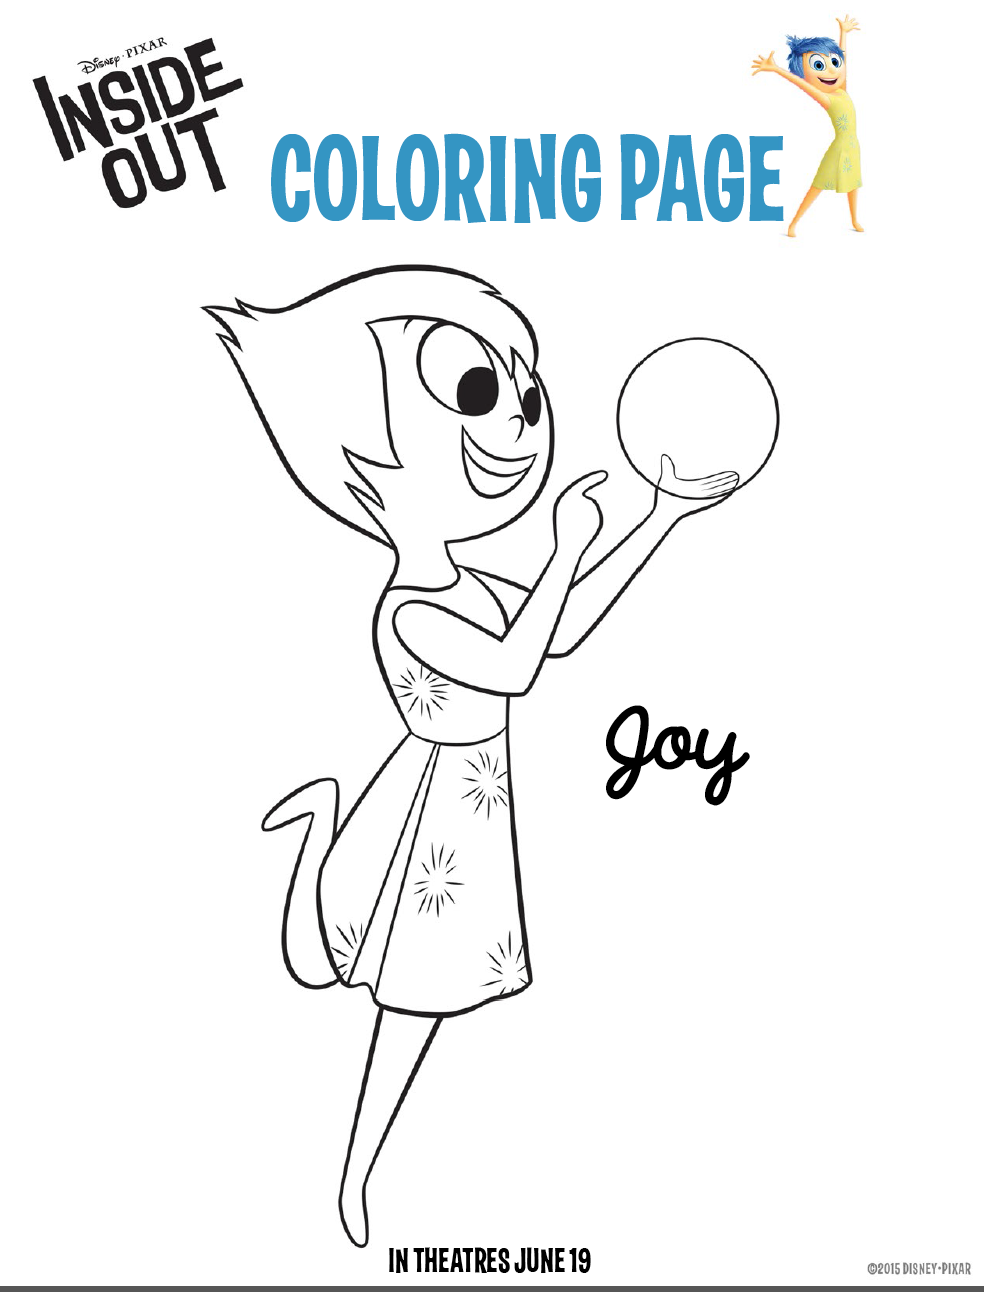 Disney coloring therapy - Inside Out Coloring Pages Free Downloads For Kids Insideoutevent